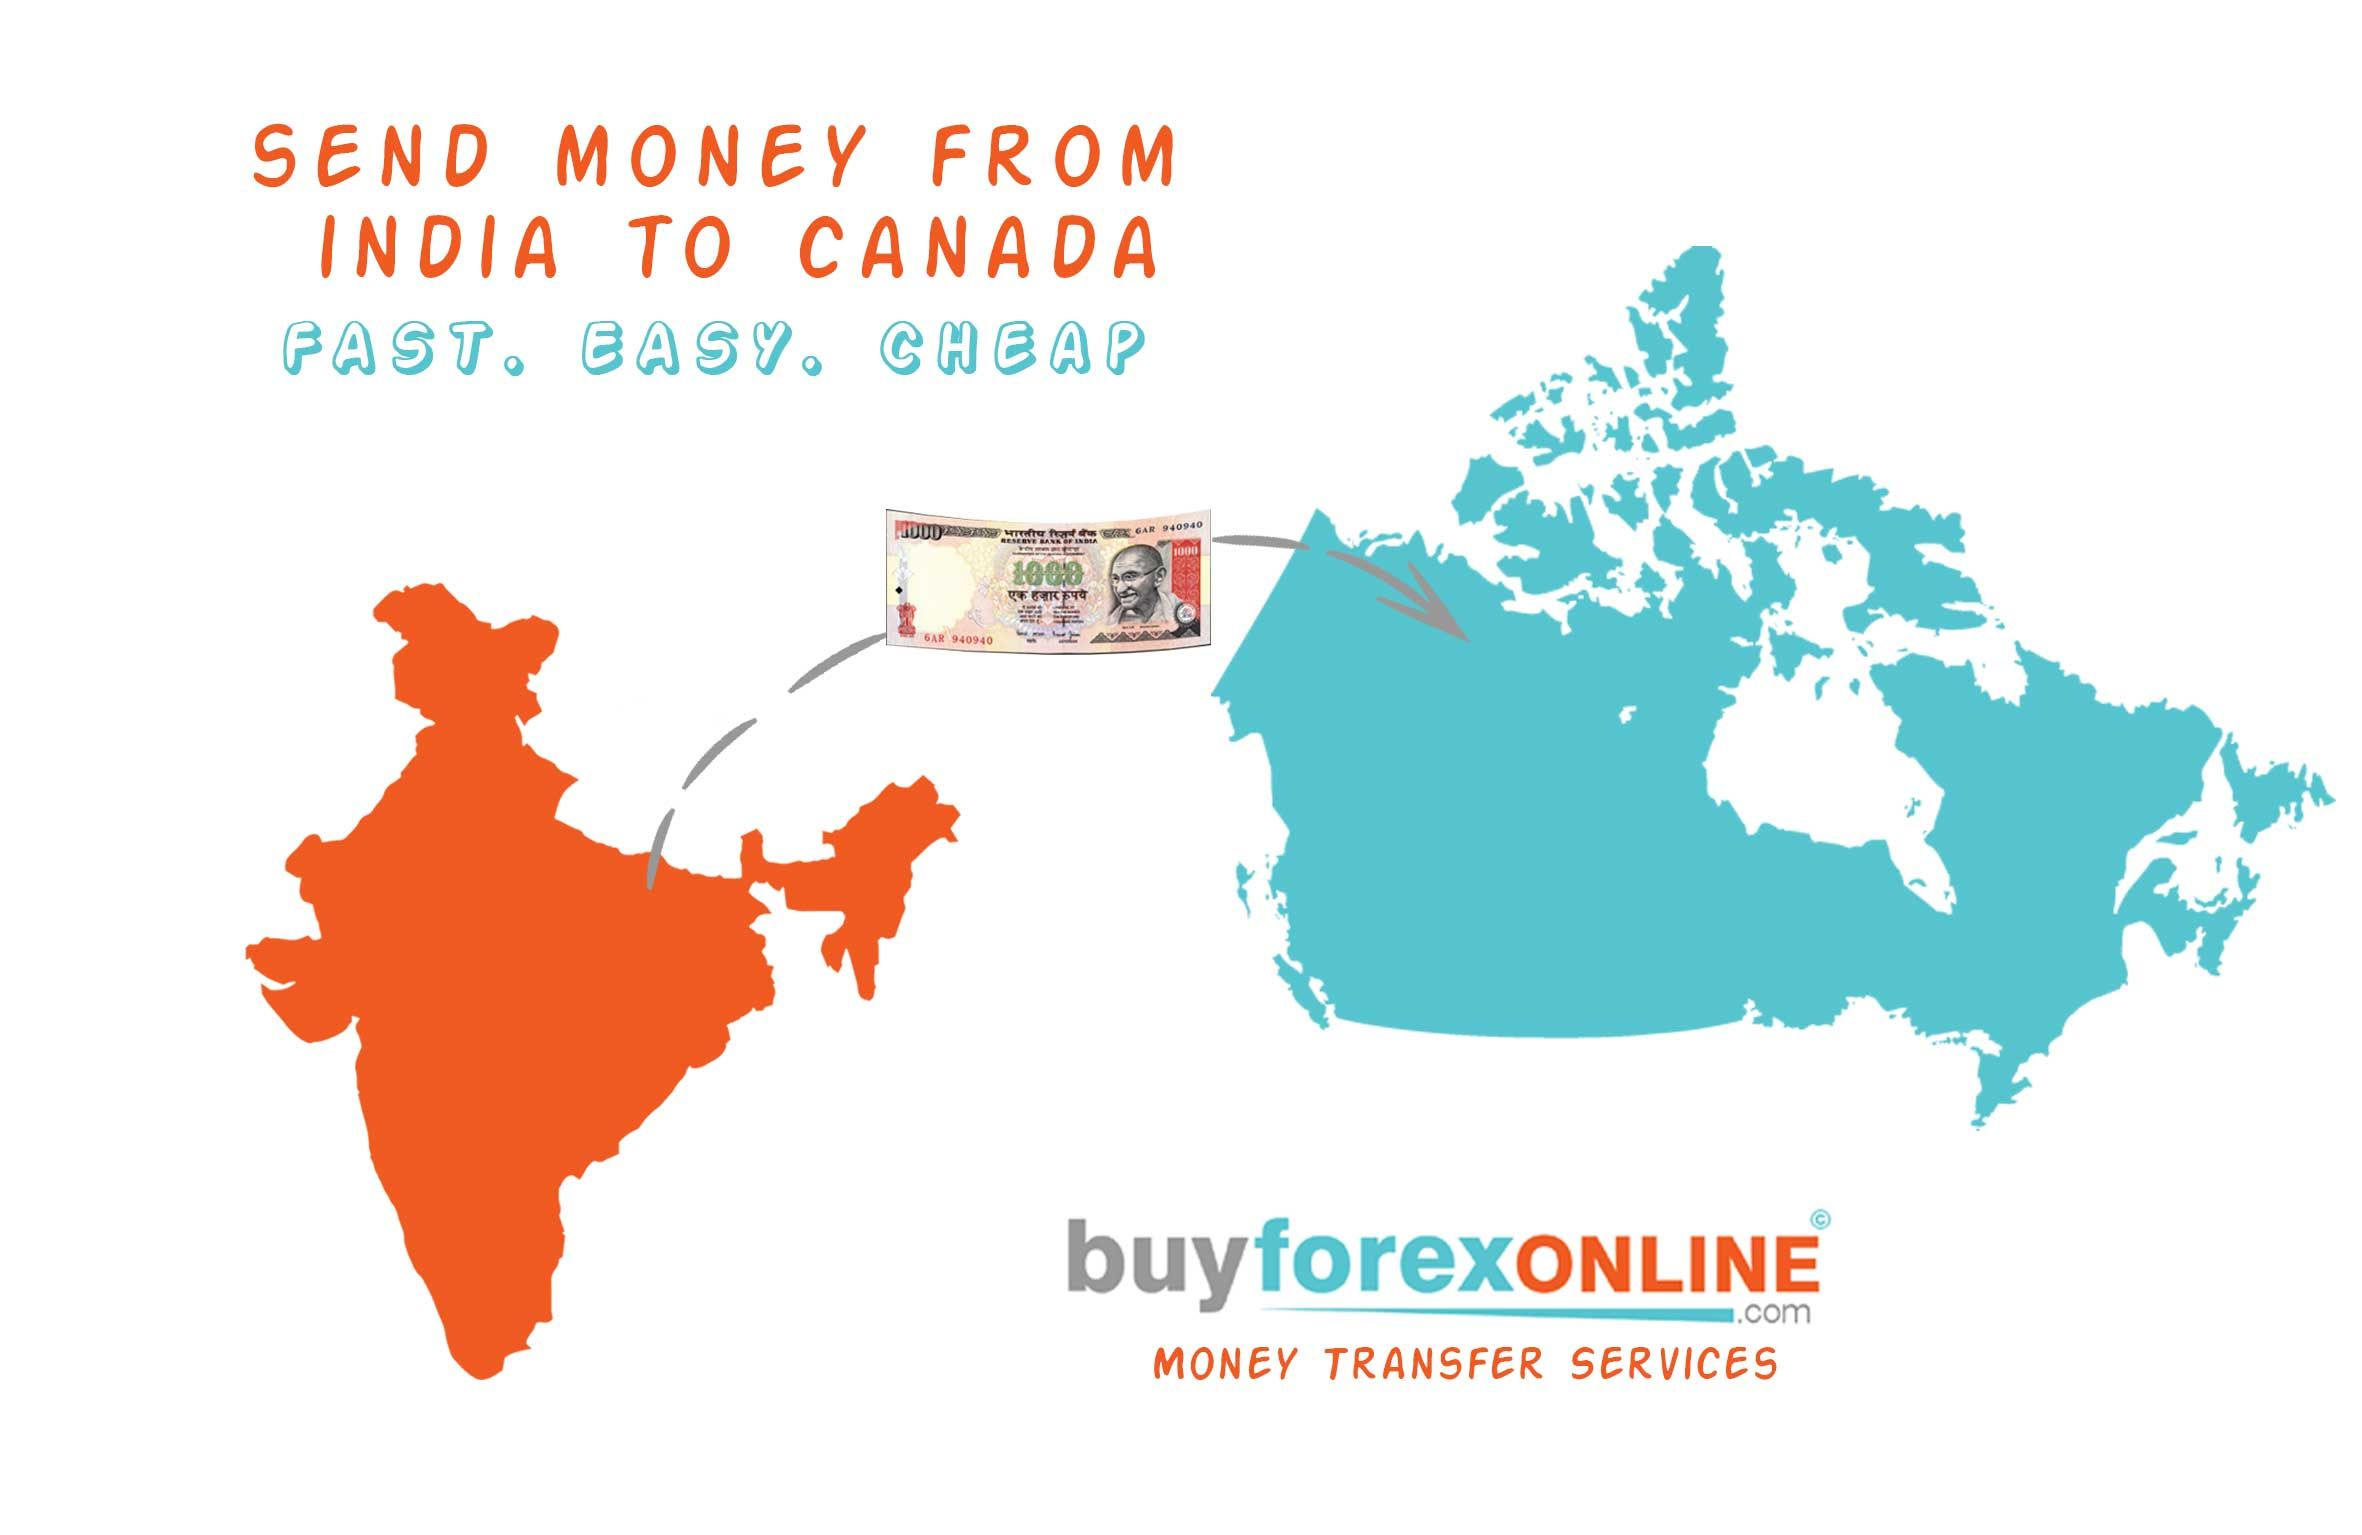 Avail The Best Send Money From India To Canada Services They Offer Instant Online